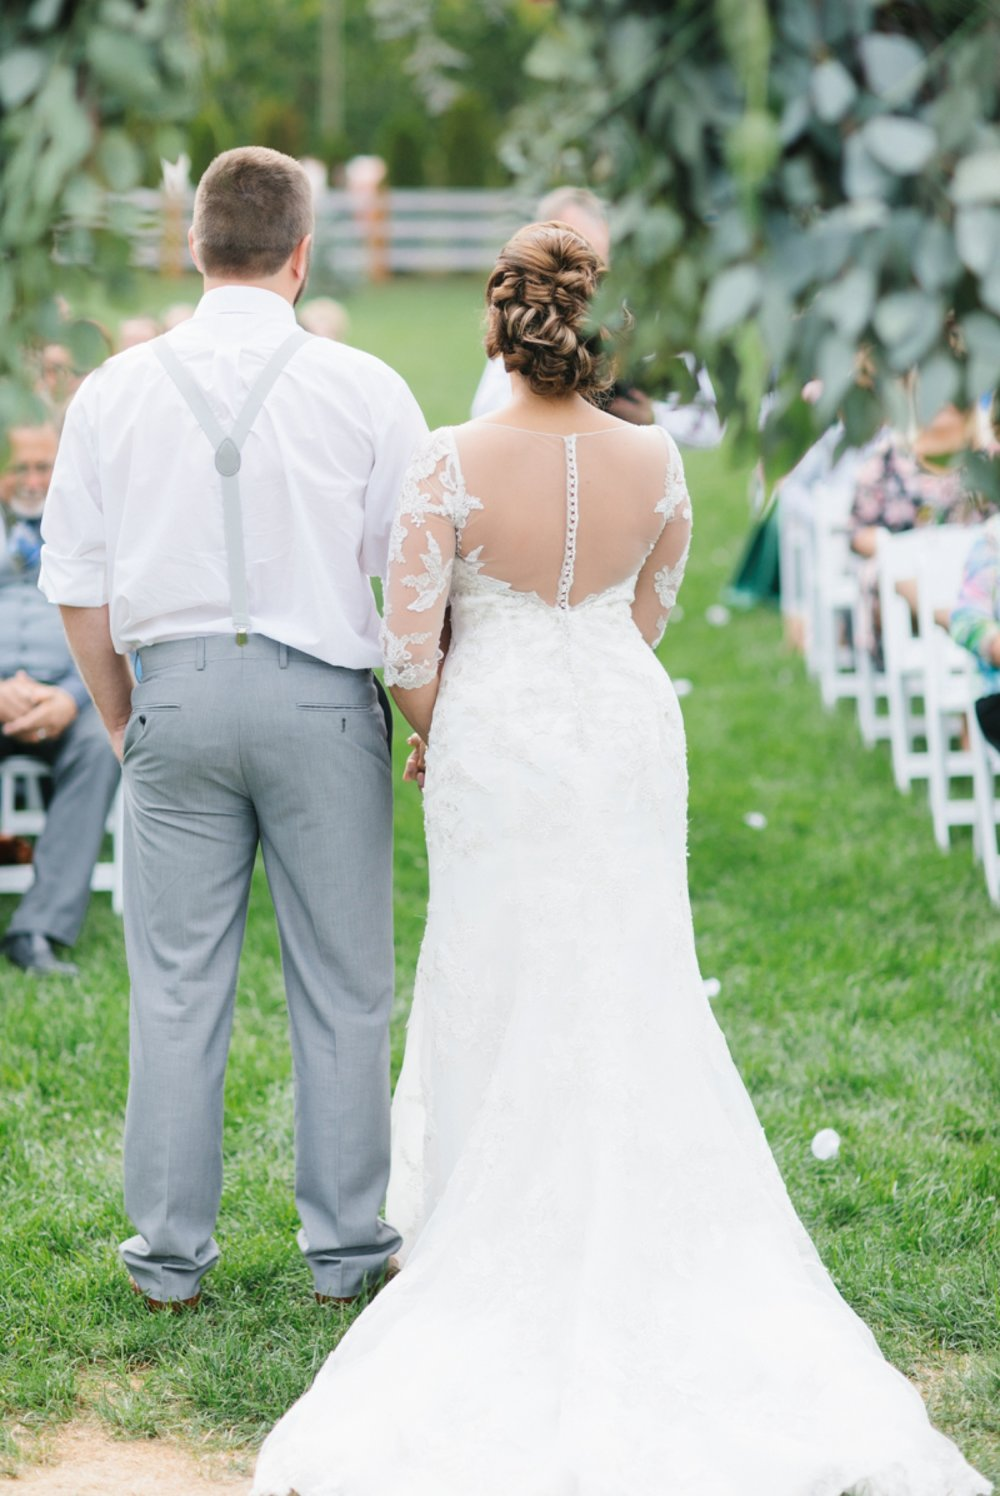 Wenatchee Wedding Photographer | Hampton Hideaway | Summer Rustic Wedding Eastern Washington | Emma Rose Company | Pastel Wedding Inspiration | Lace Wedding | Pacific Northwest Wedding 73.jpg